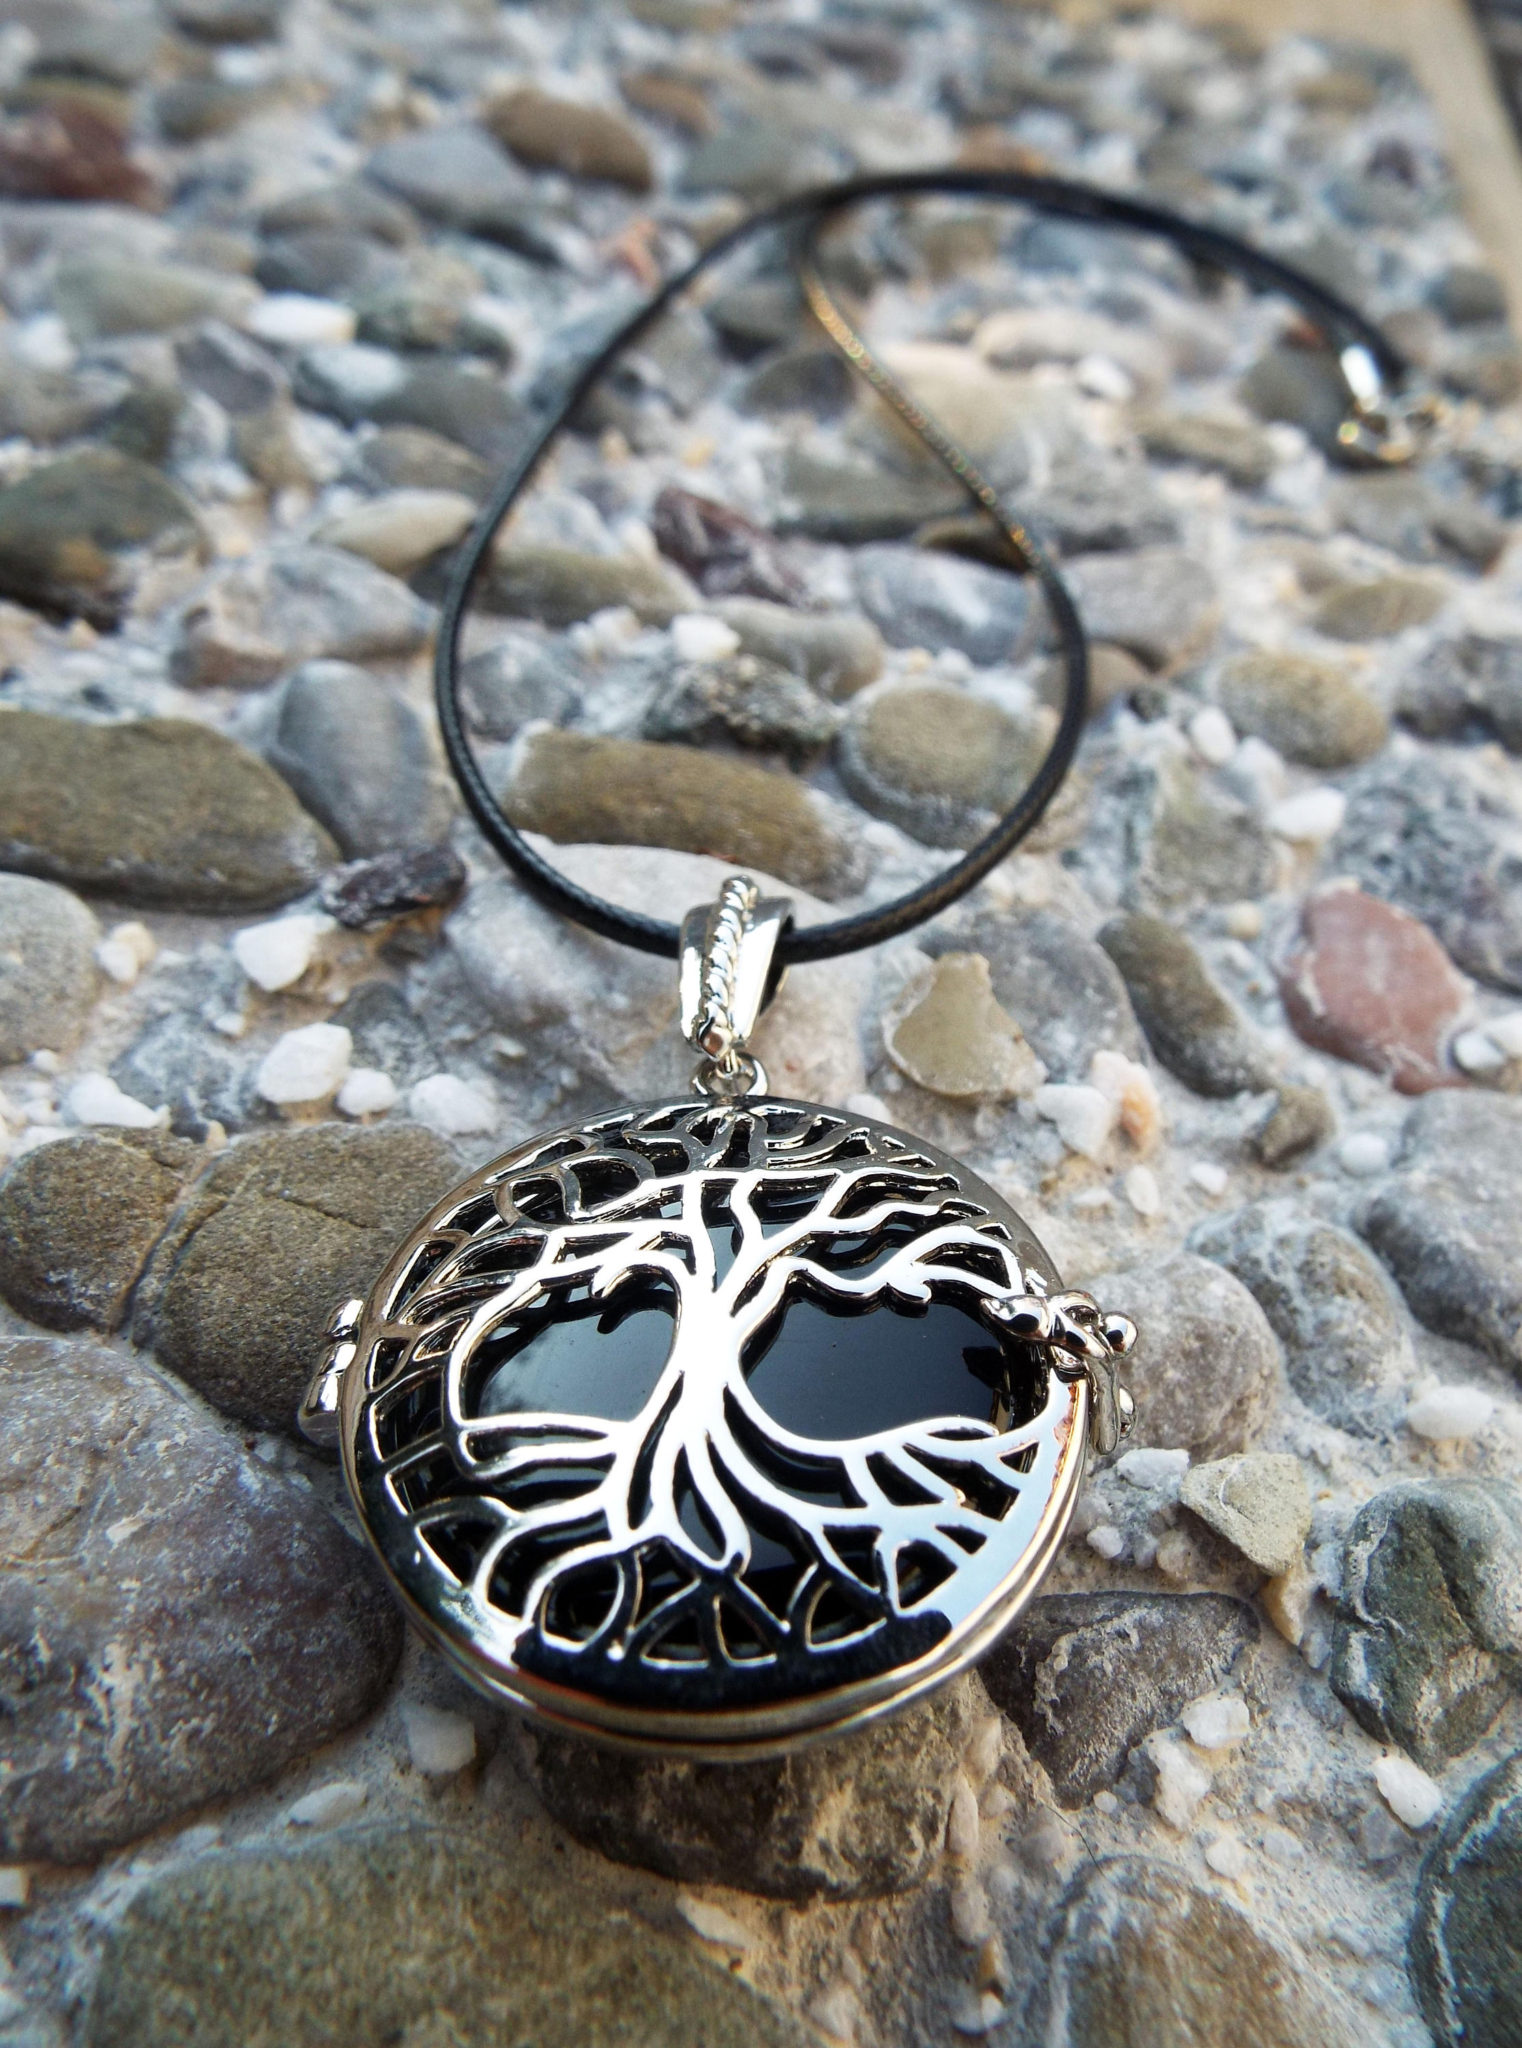 Onyx Pendant Tree of Life Silver Handmade Necklace Black Gemstone Jewelry